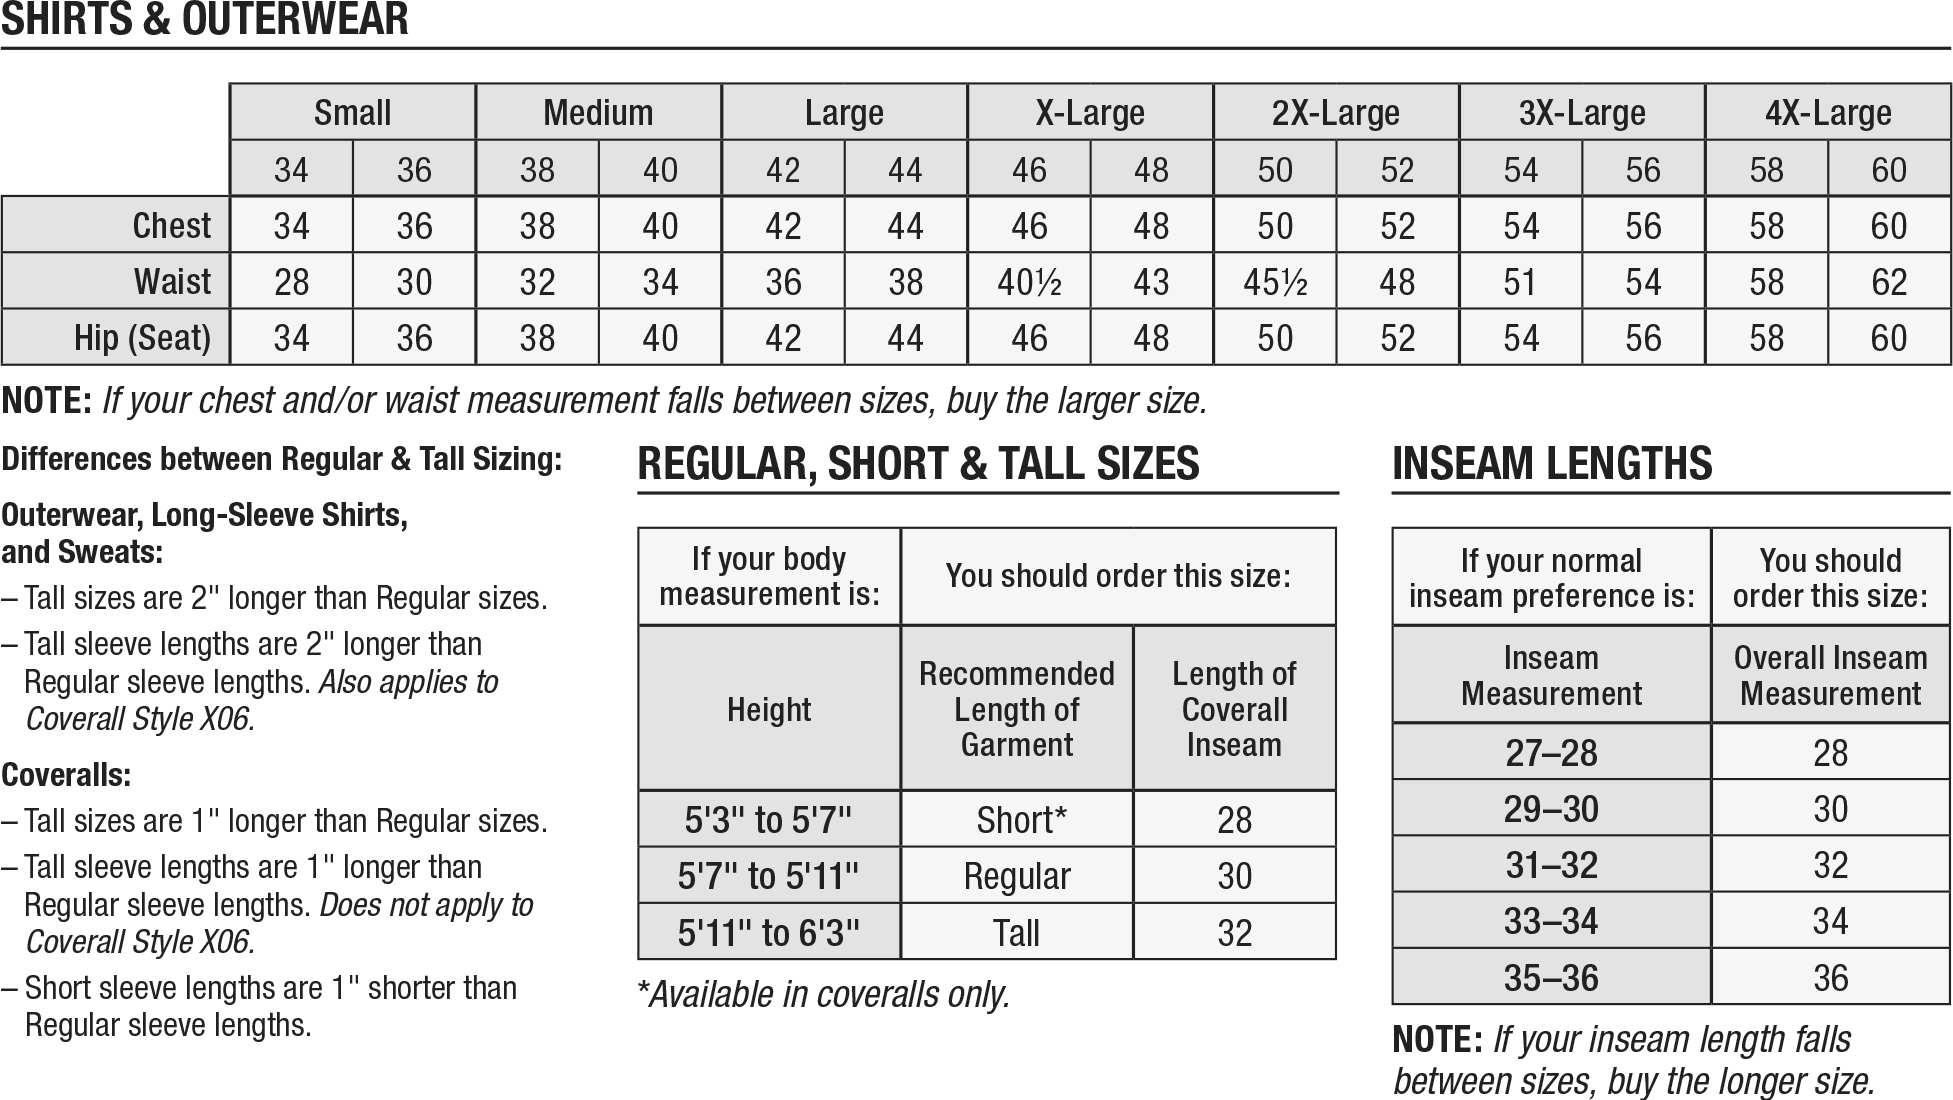 Sizing chart for Carhartt products